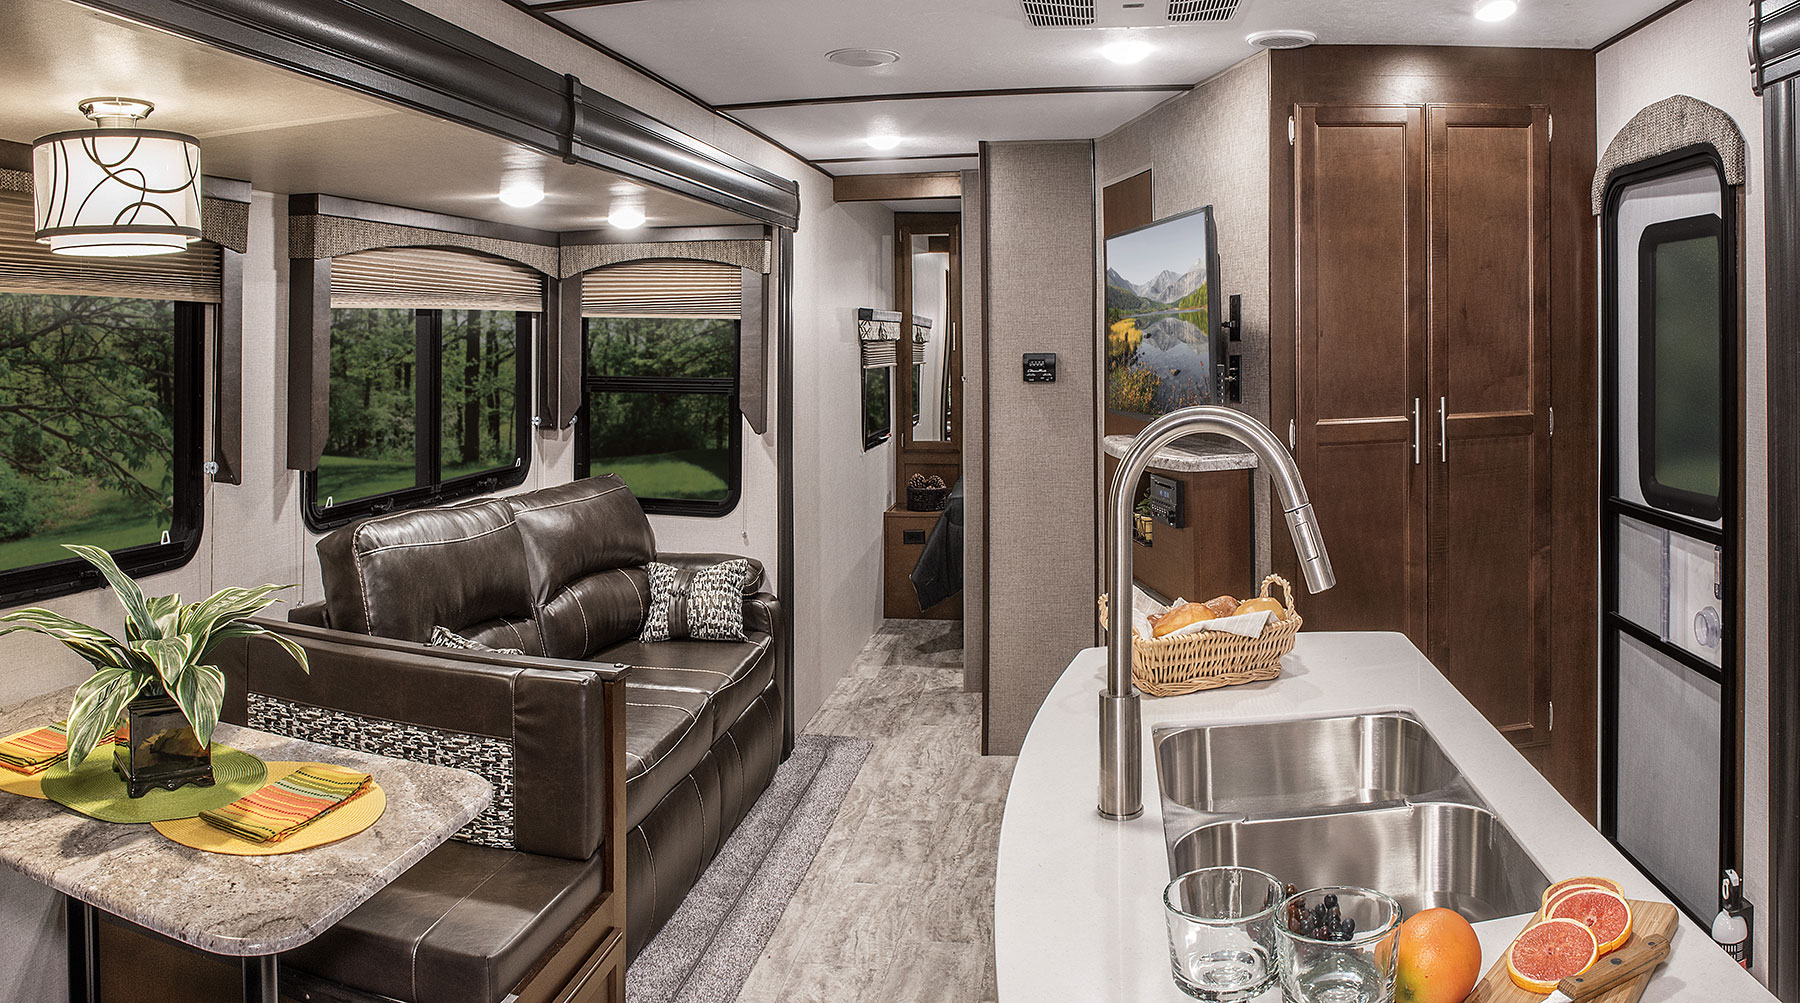 Lightweight Travel Trailers >> 2018 Spree S333BHK Luxury Lightweight Travel Trailer | KZ RV